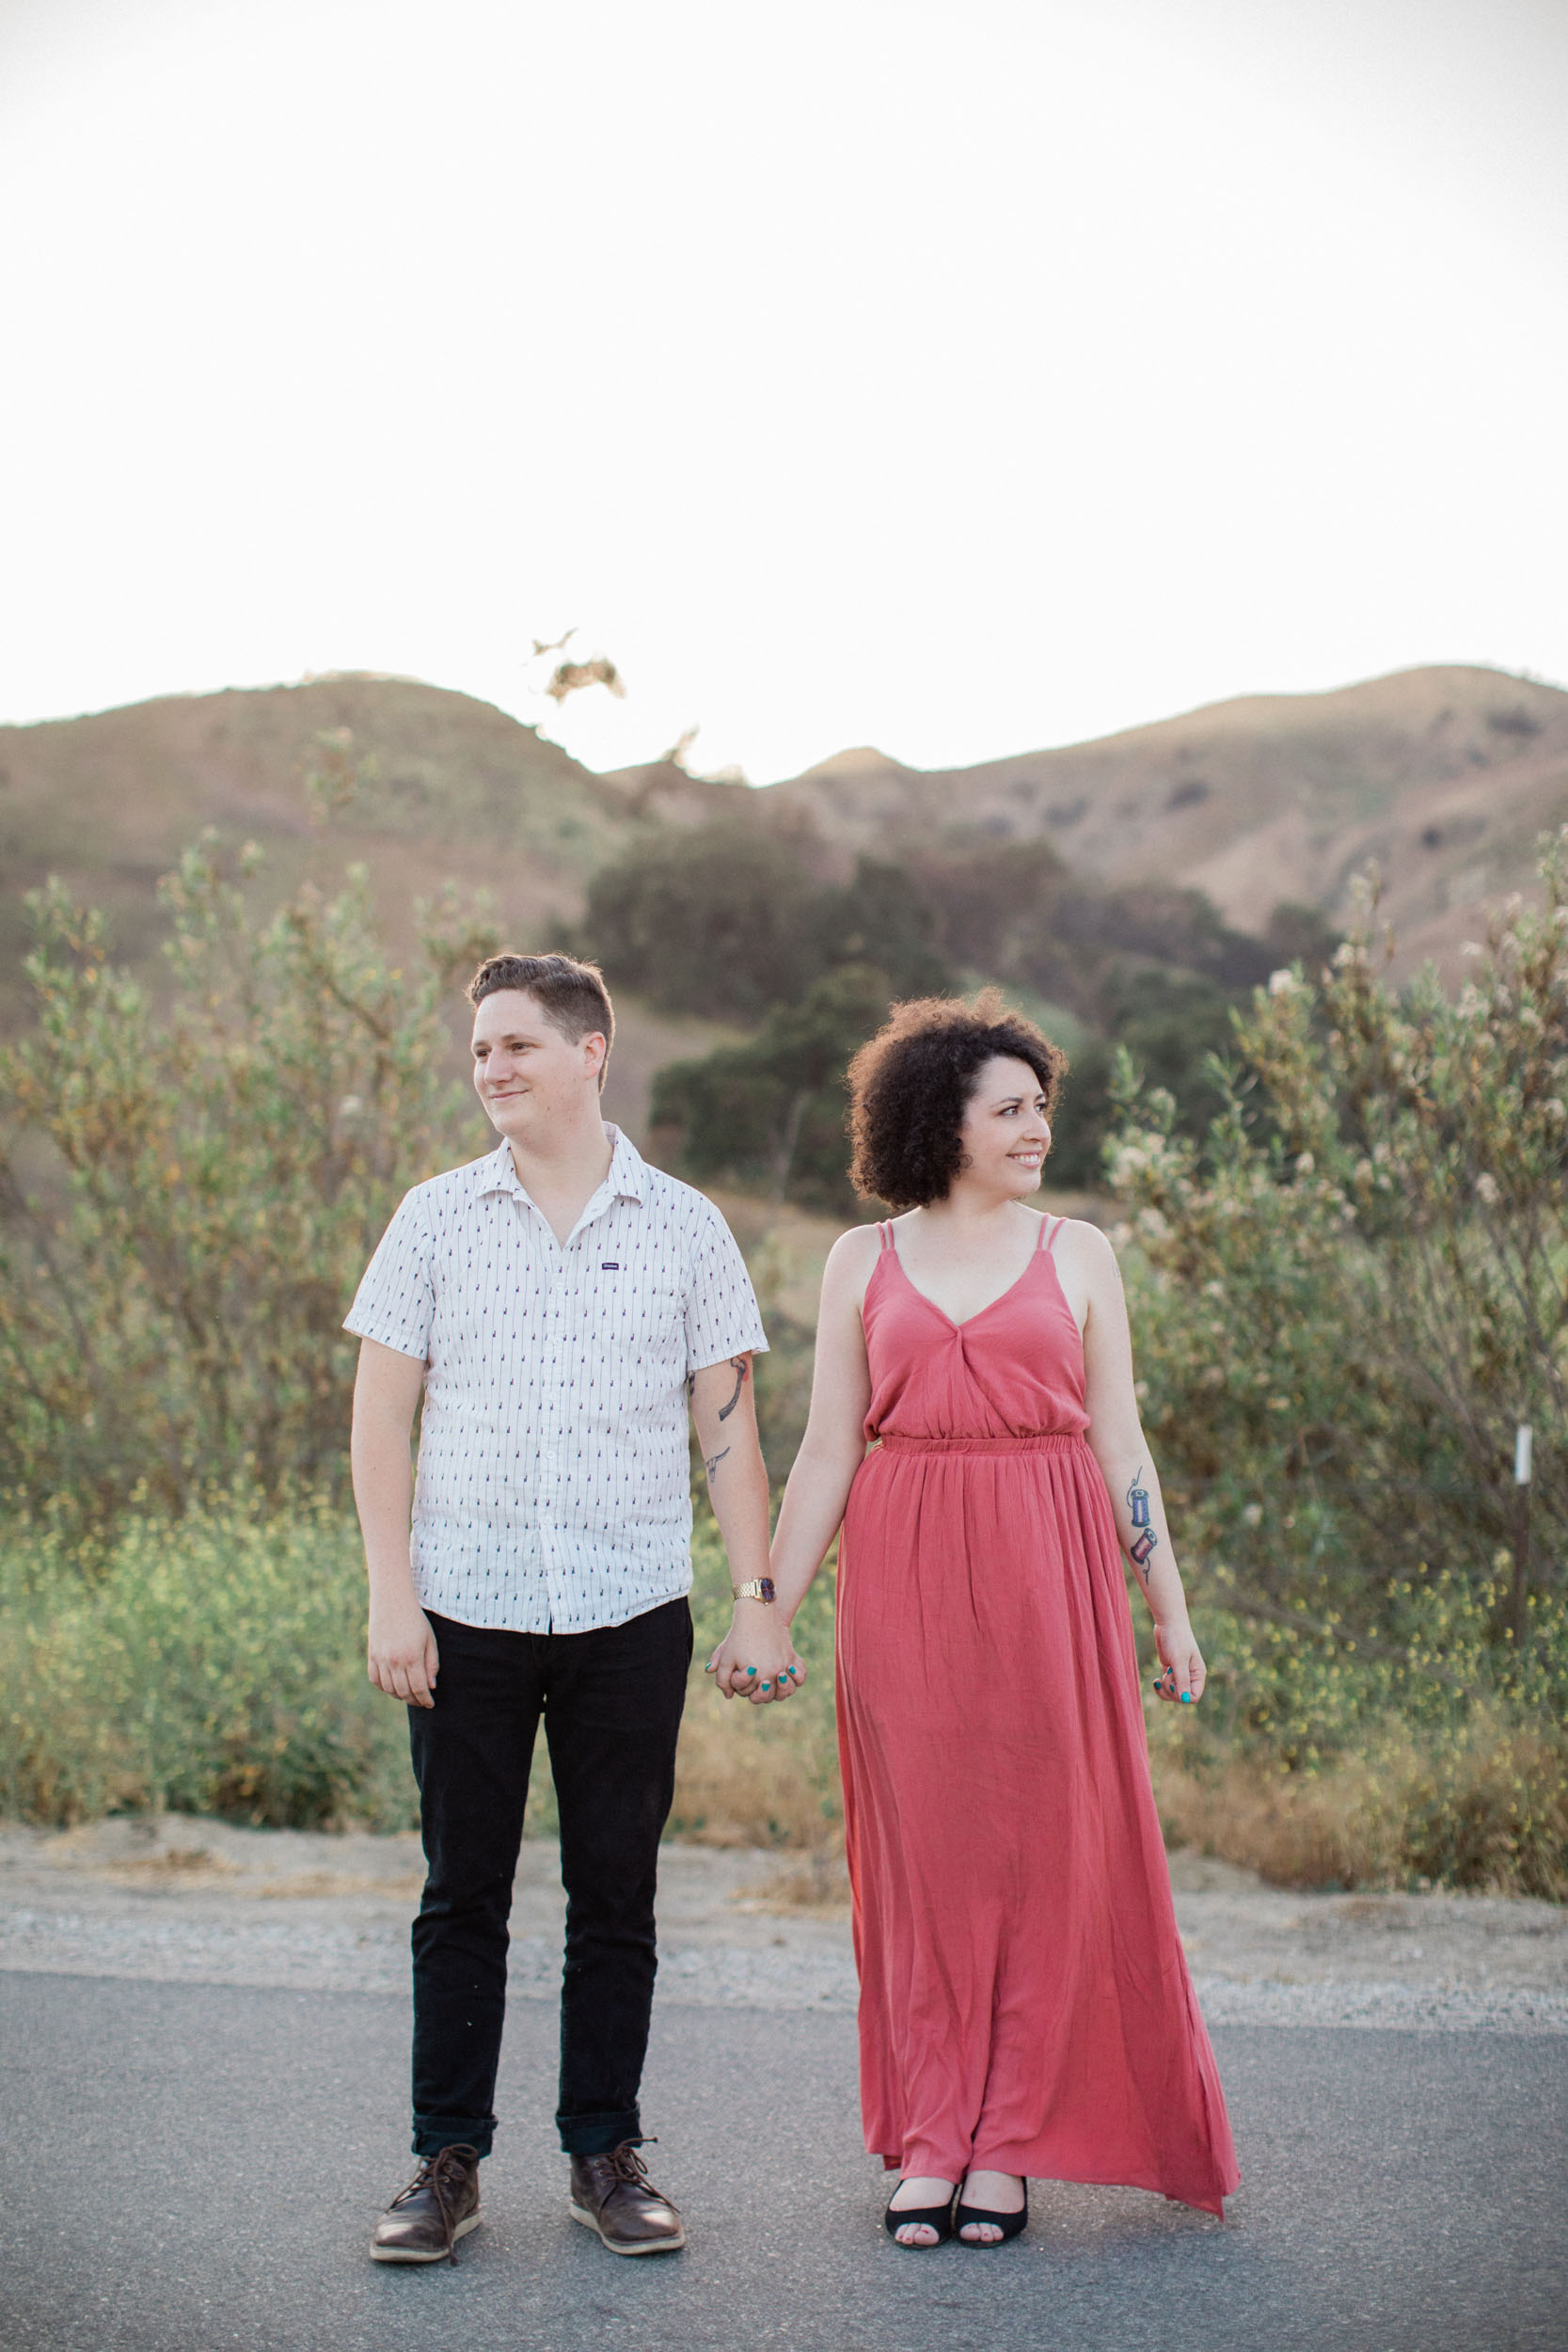 BKM-Photography-Ventura-Southern-California-Engagement-Wedding-0044.jpg